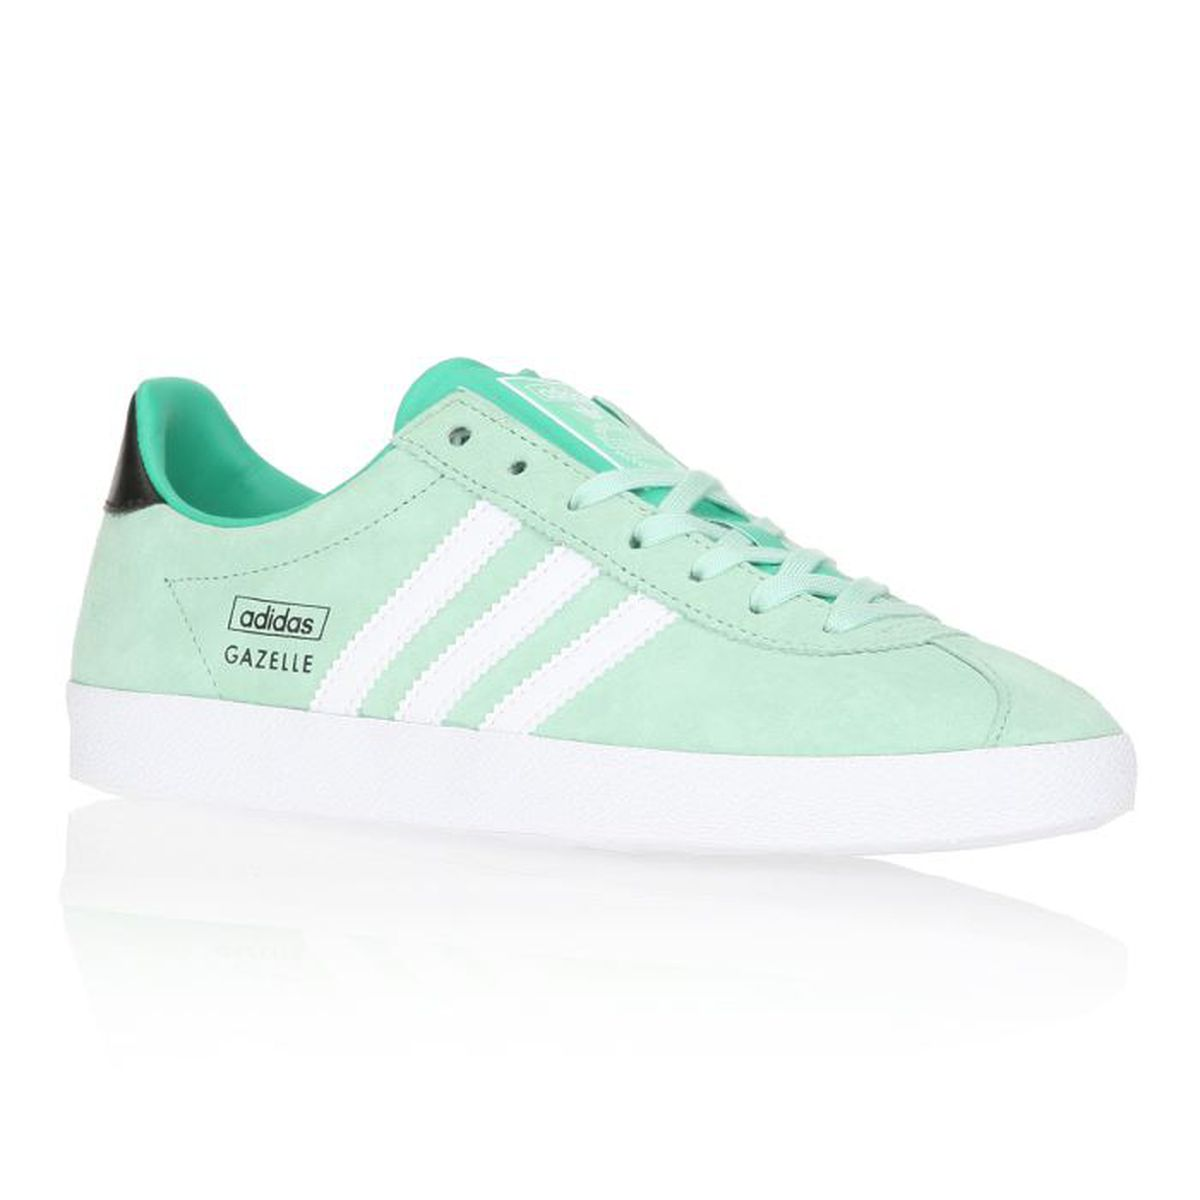 adidas originals baskets gazelle og femme femme vert d 39 eau et blanc achat vente adidas. Black Bedroom Furniture Sets. Home Design Ideas